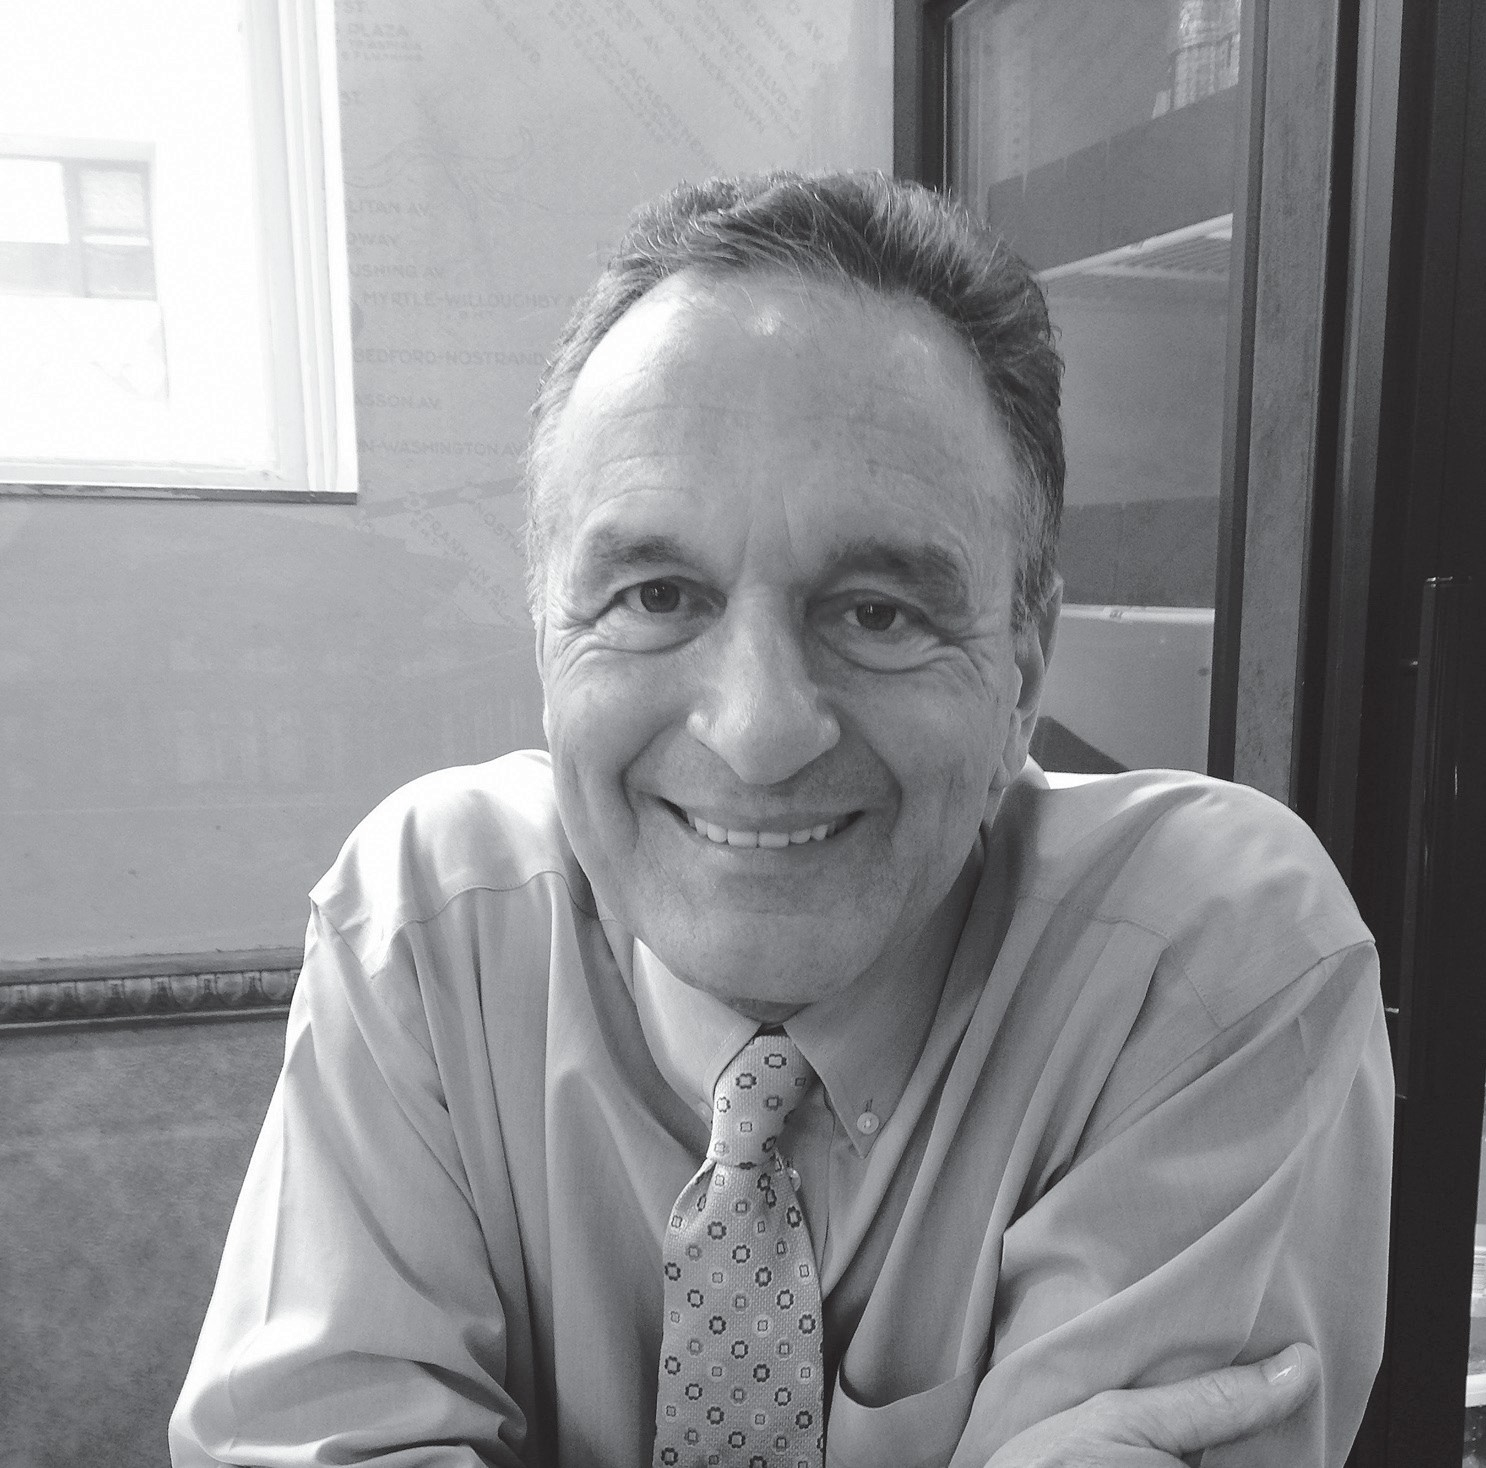 In this 2014 file photo, Subway co-founder Fred DeLuca poses for a photo at a Subway restaurant in New York.